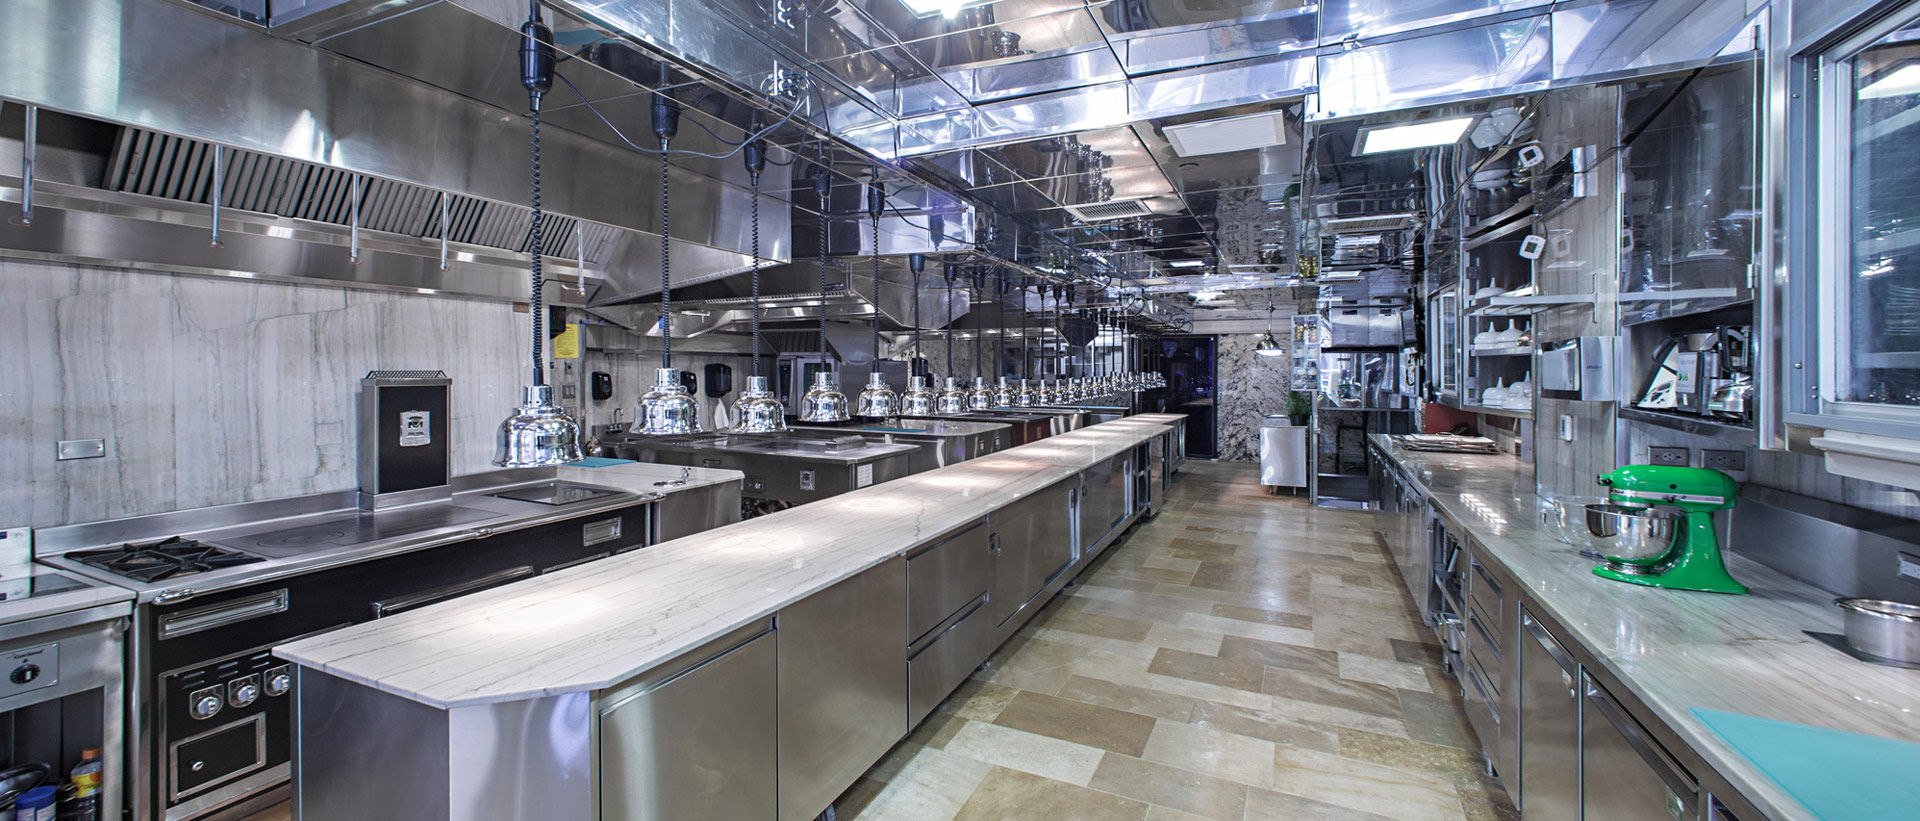 Restaurant Kitchens Behind The Scenes